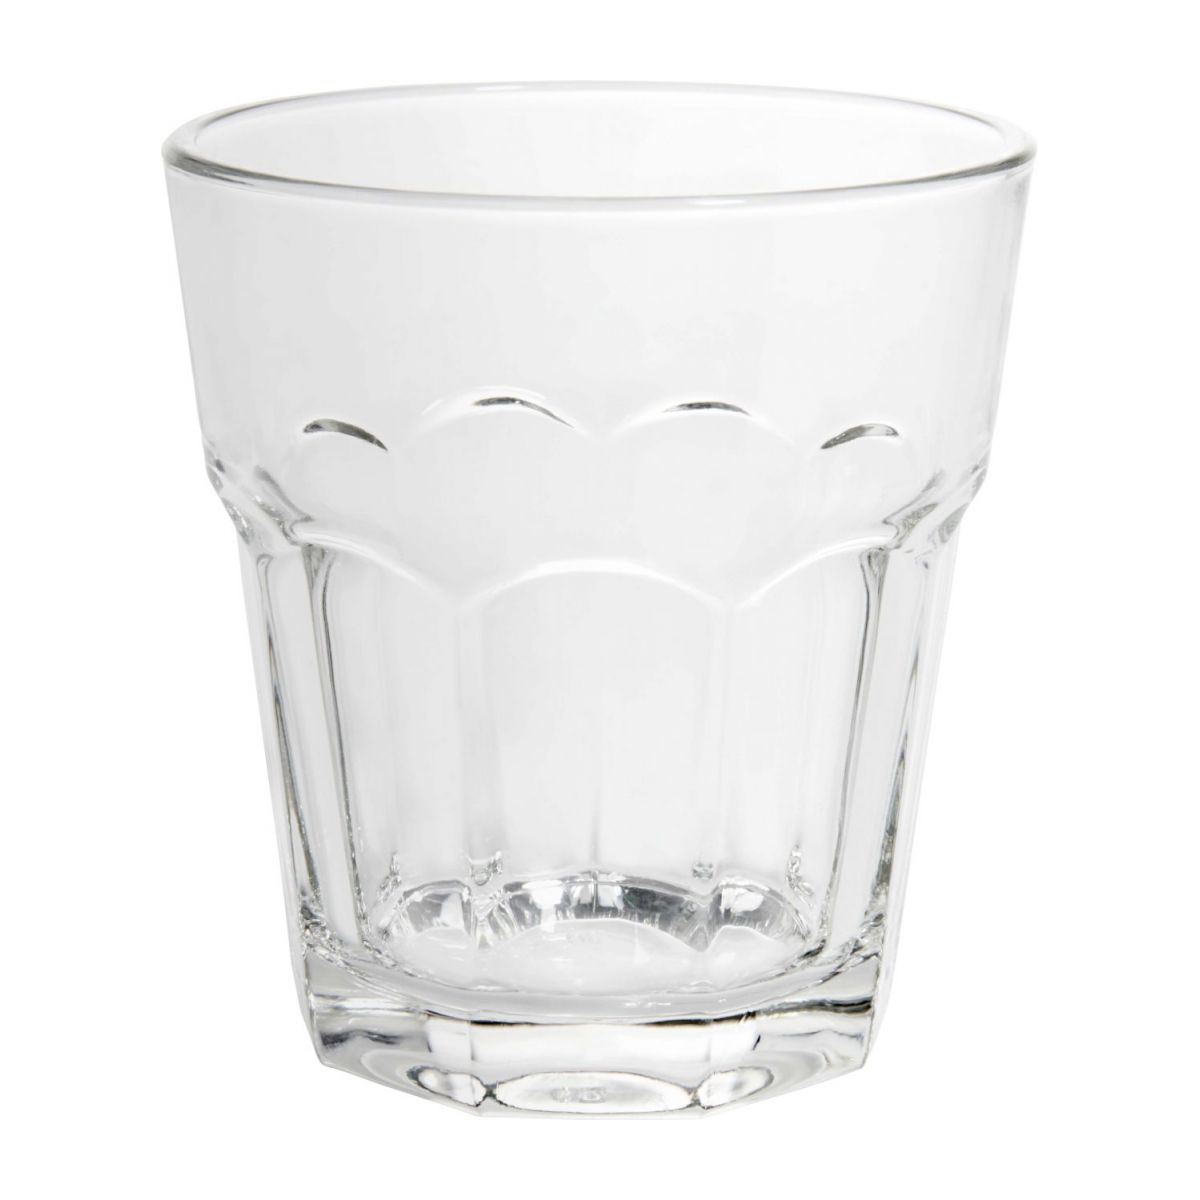 Verre transparent n°1